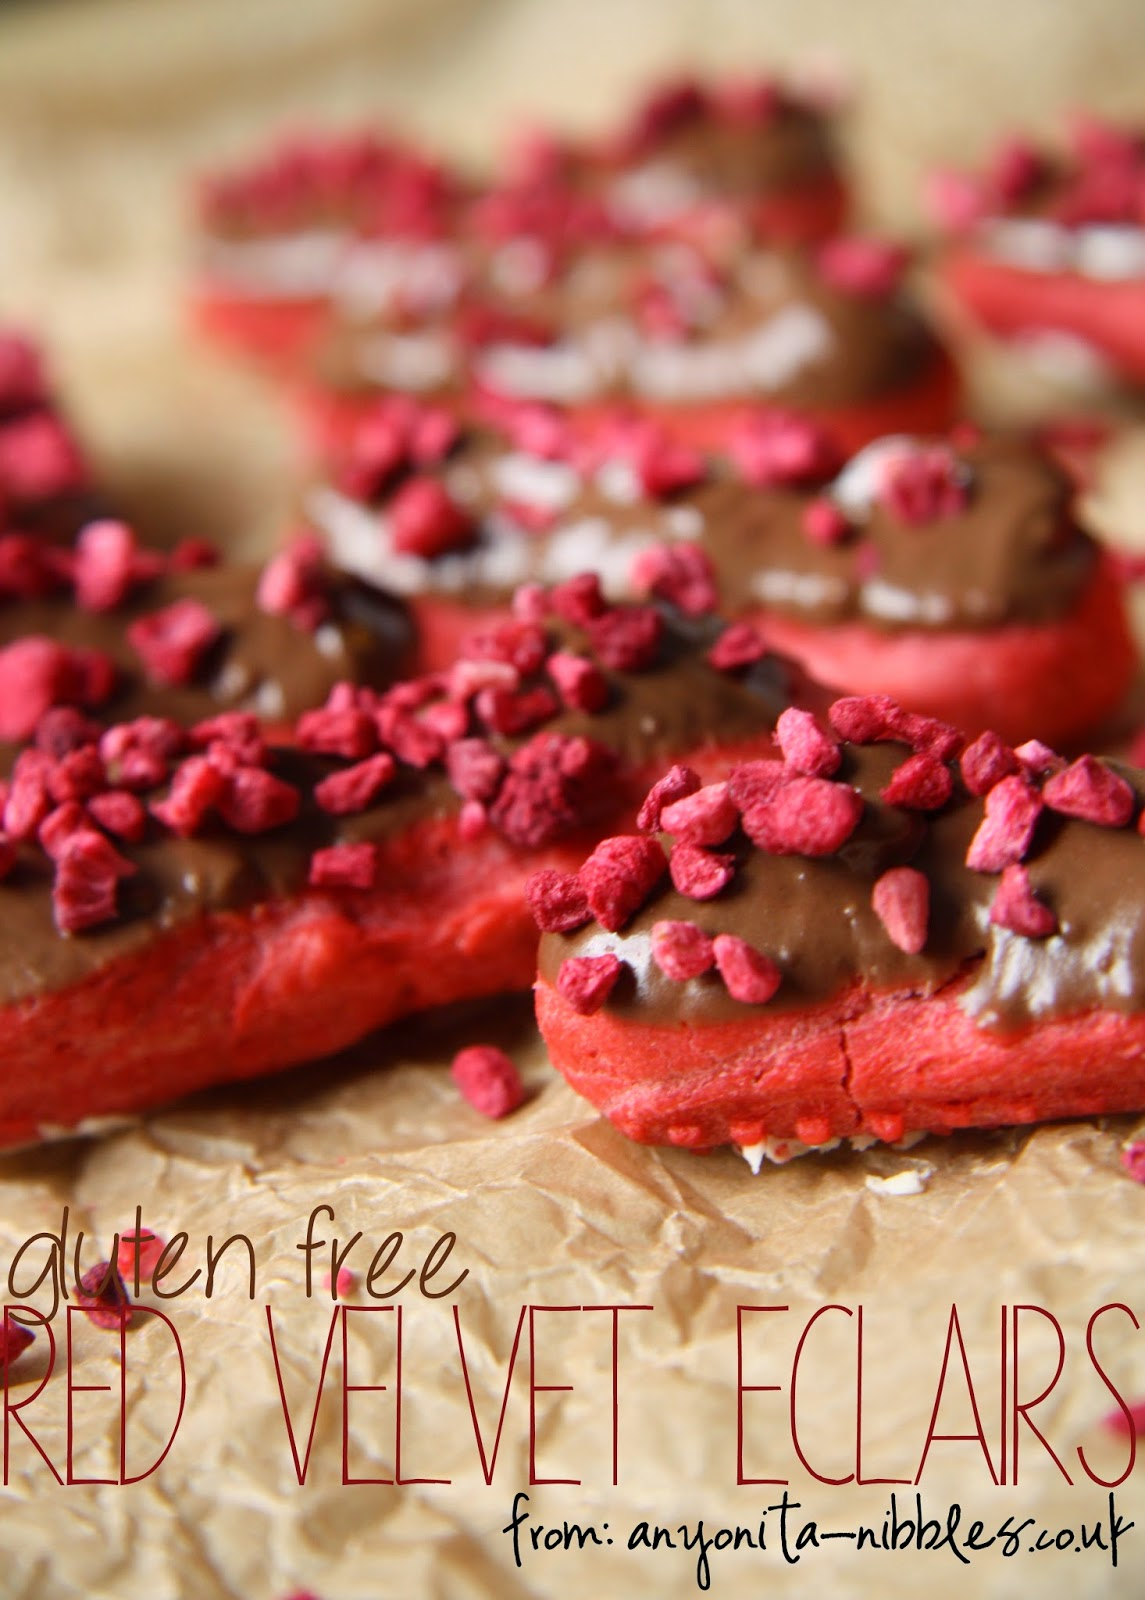 Gluten Free Red Velvet Eclairs with Raspberry from Anyonita-nibbles.co.uk